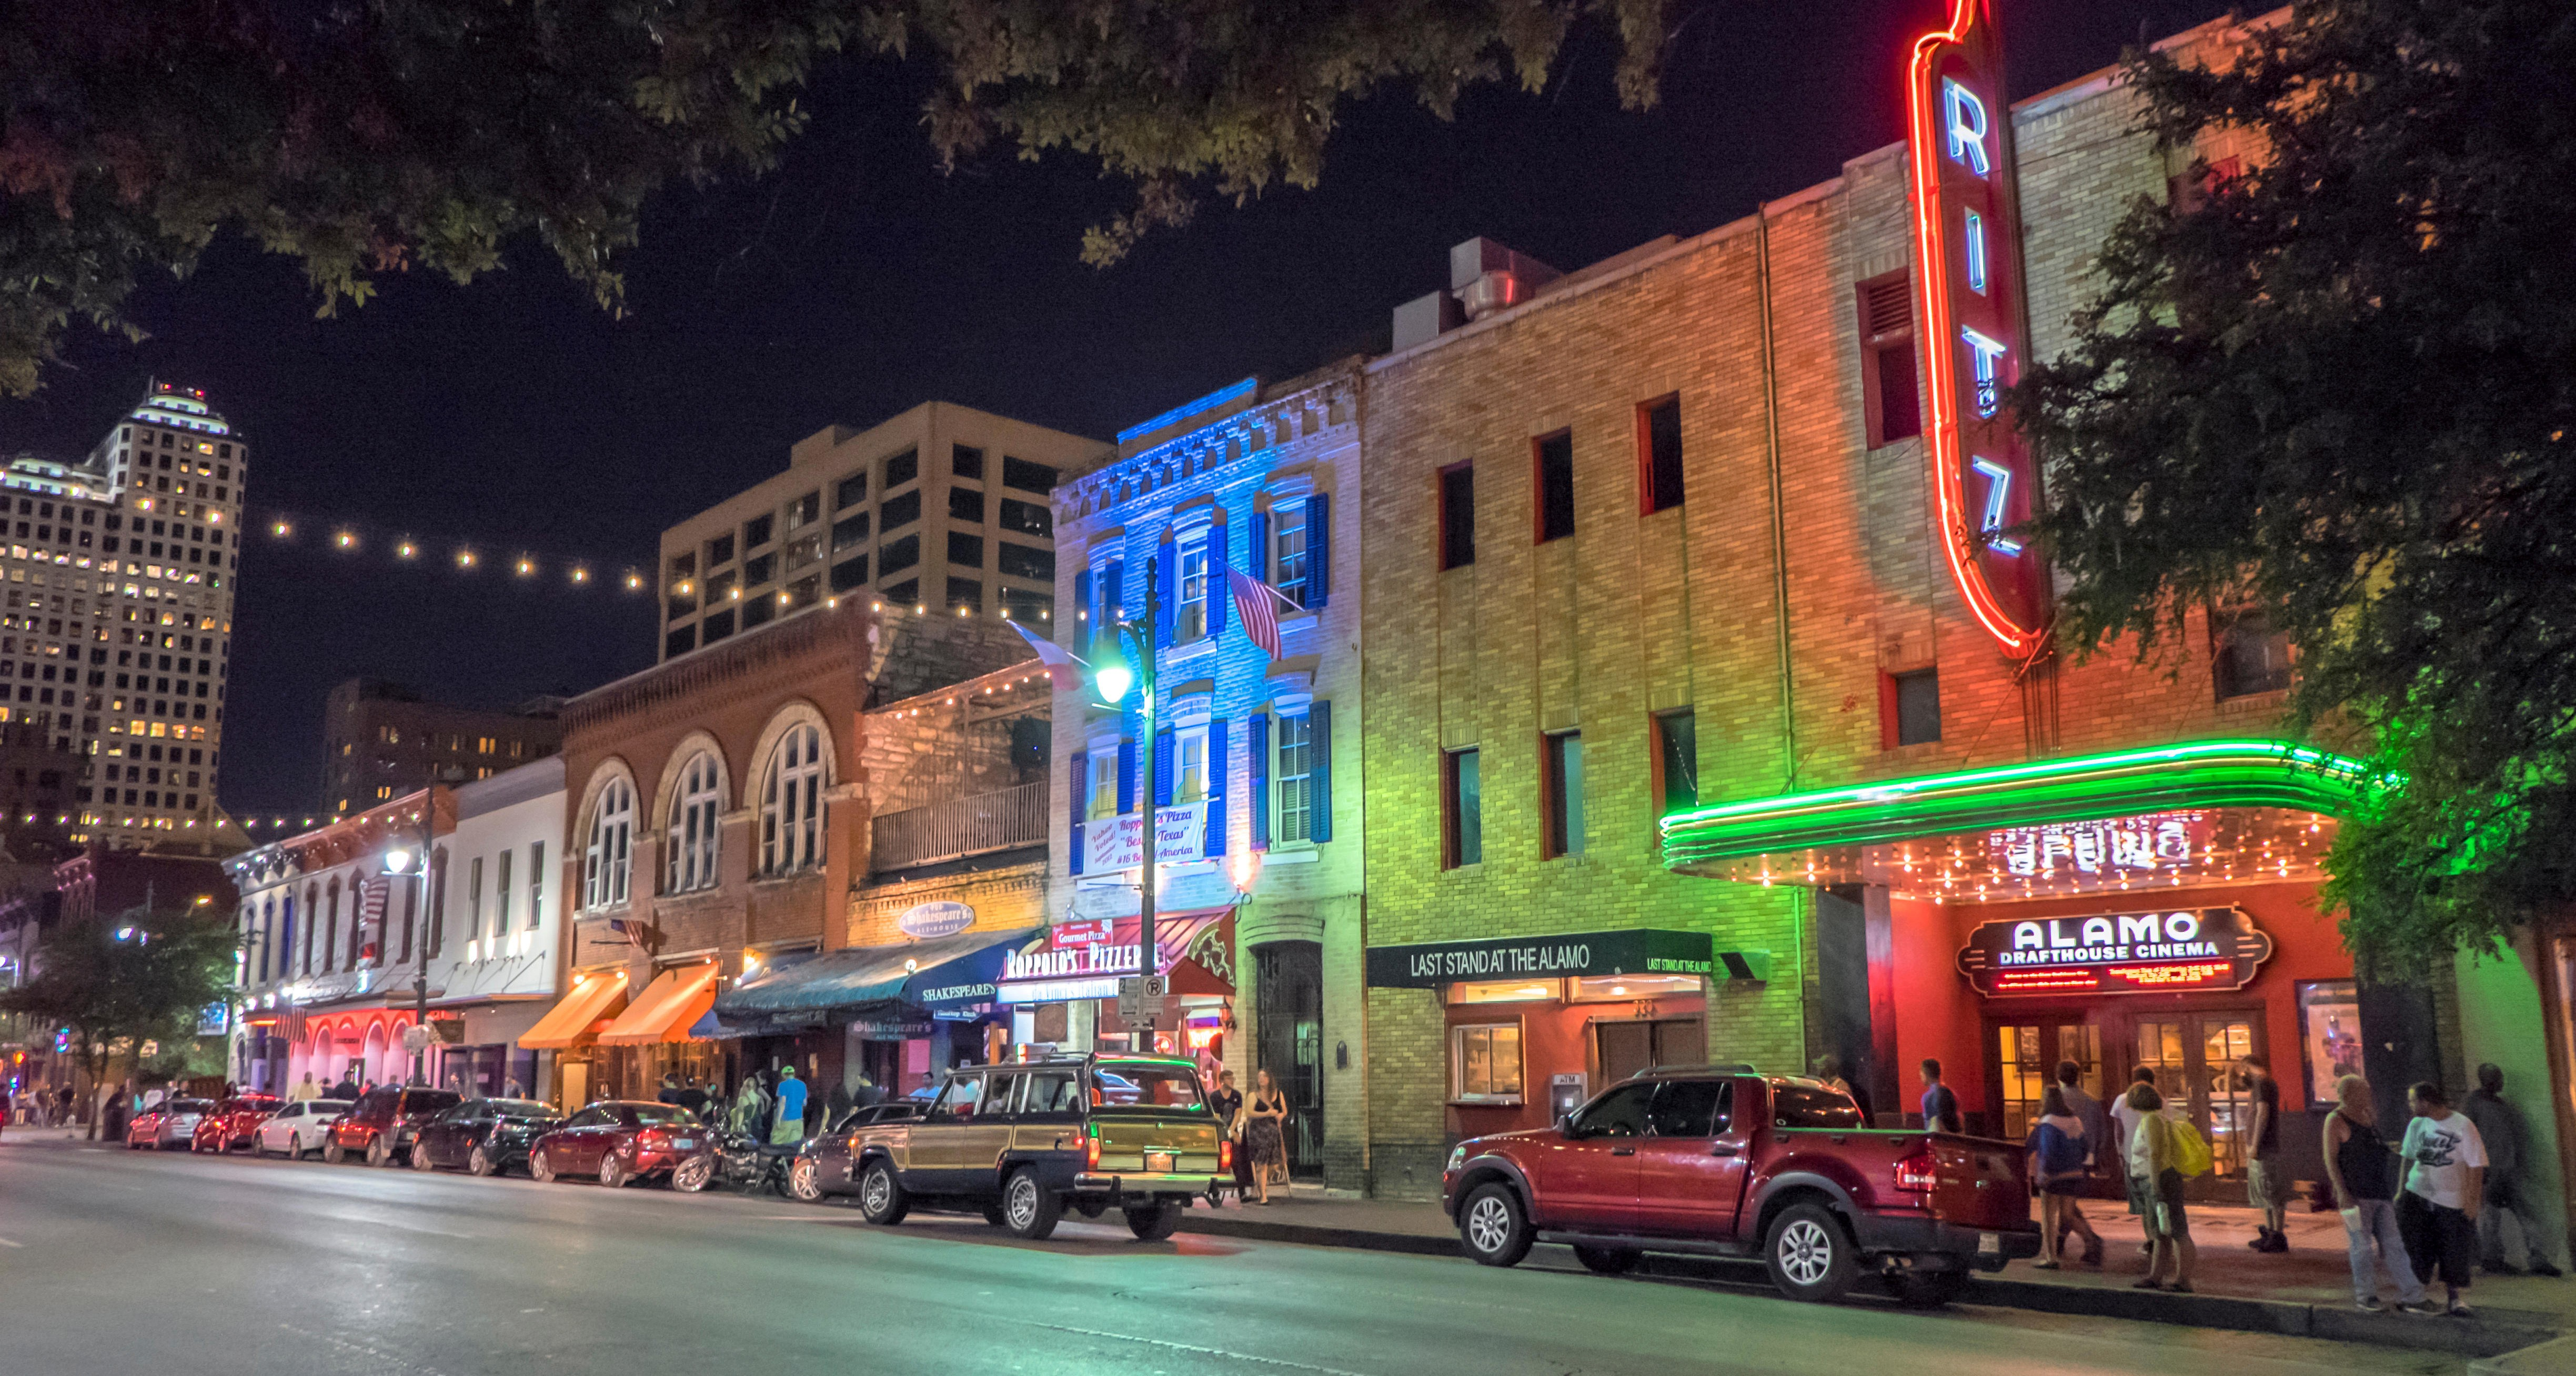 Austin's 6th Street is the center of the city's nightlife